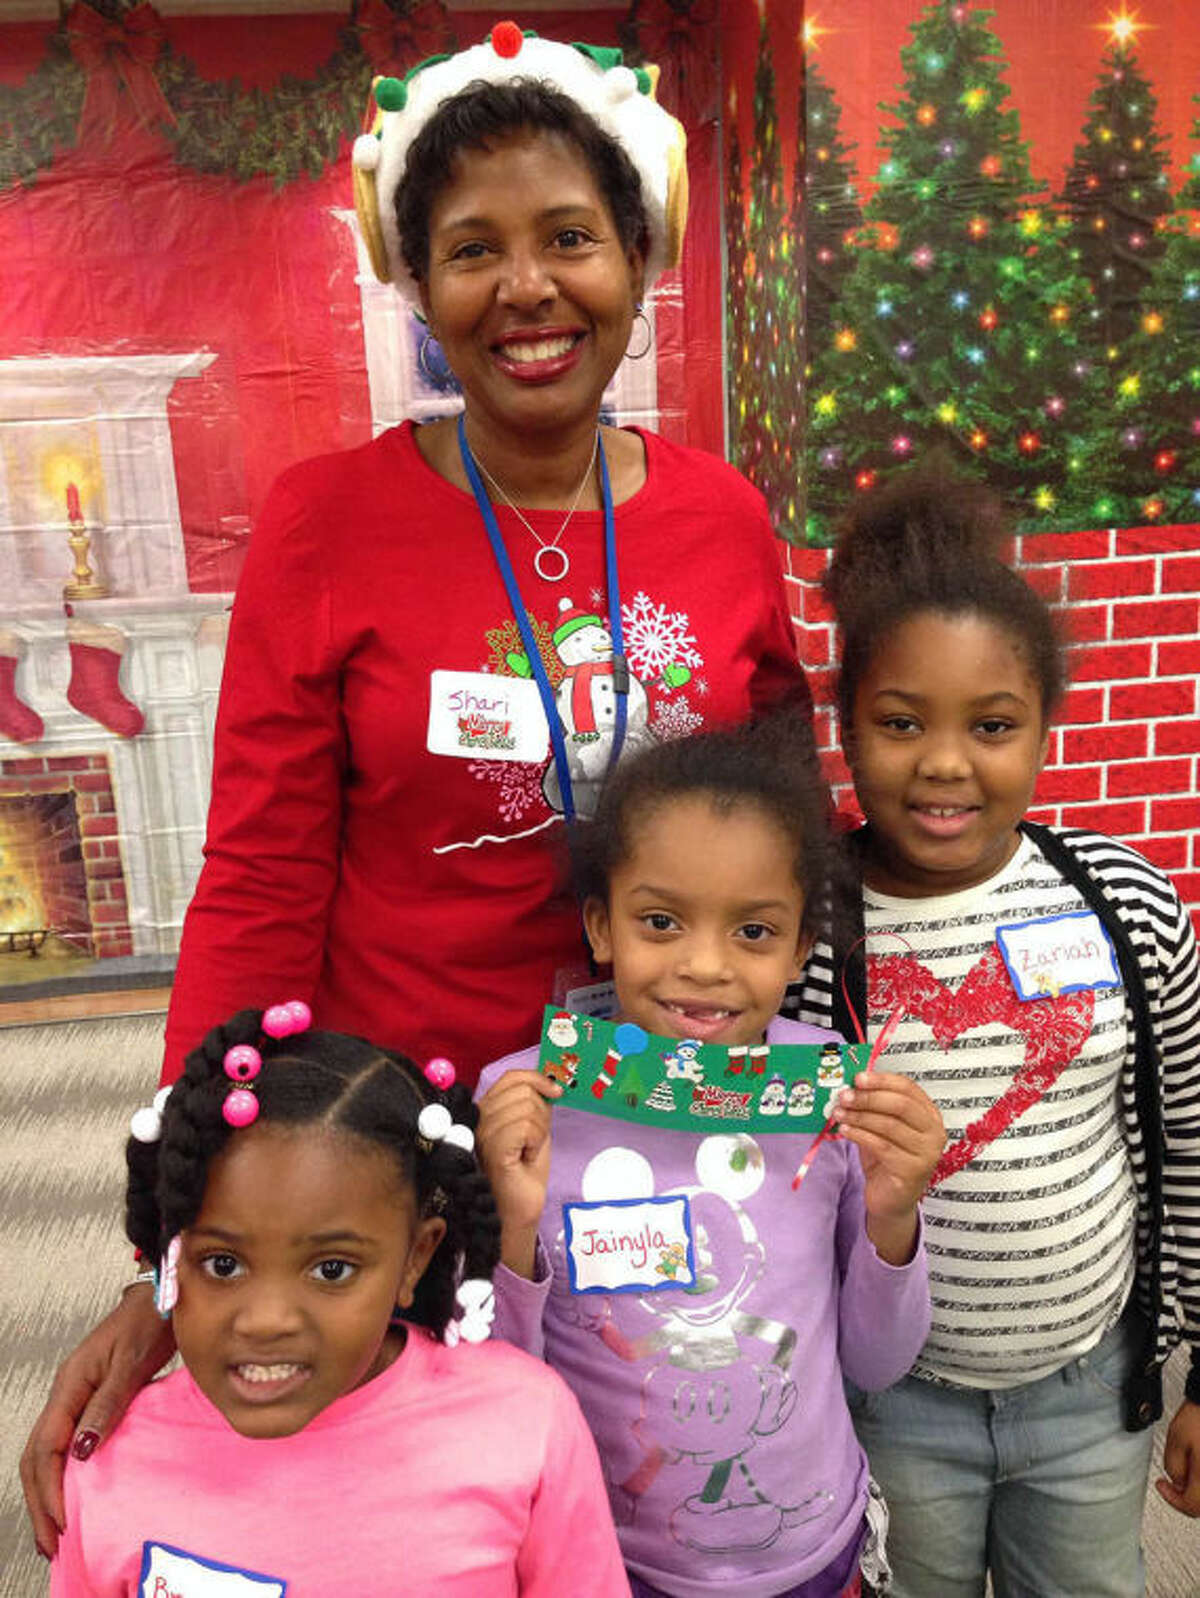 Shari Cole, employee of Beiersdorf, with three winter wonderland helpers.